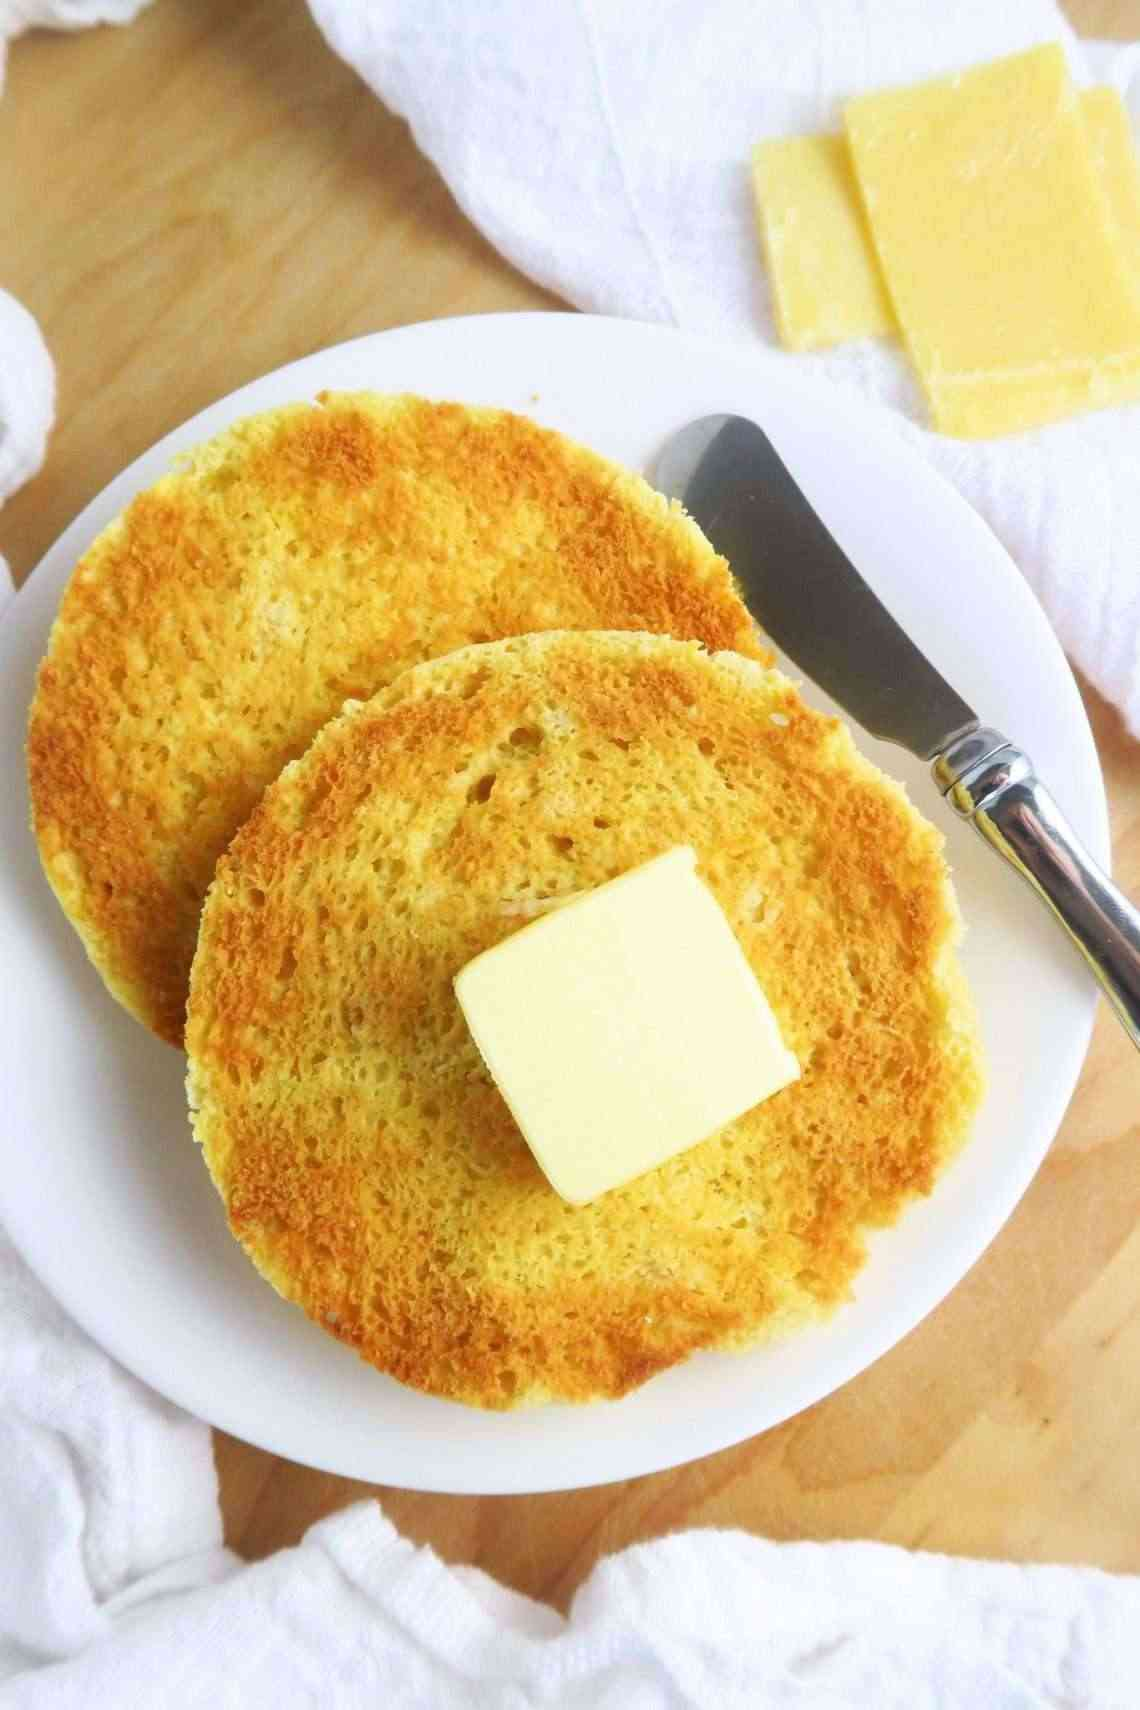 Recipe#5 wholesomeyum_two-minute-toasted-english-muffin-paleo-low-carb